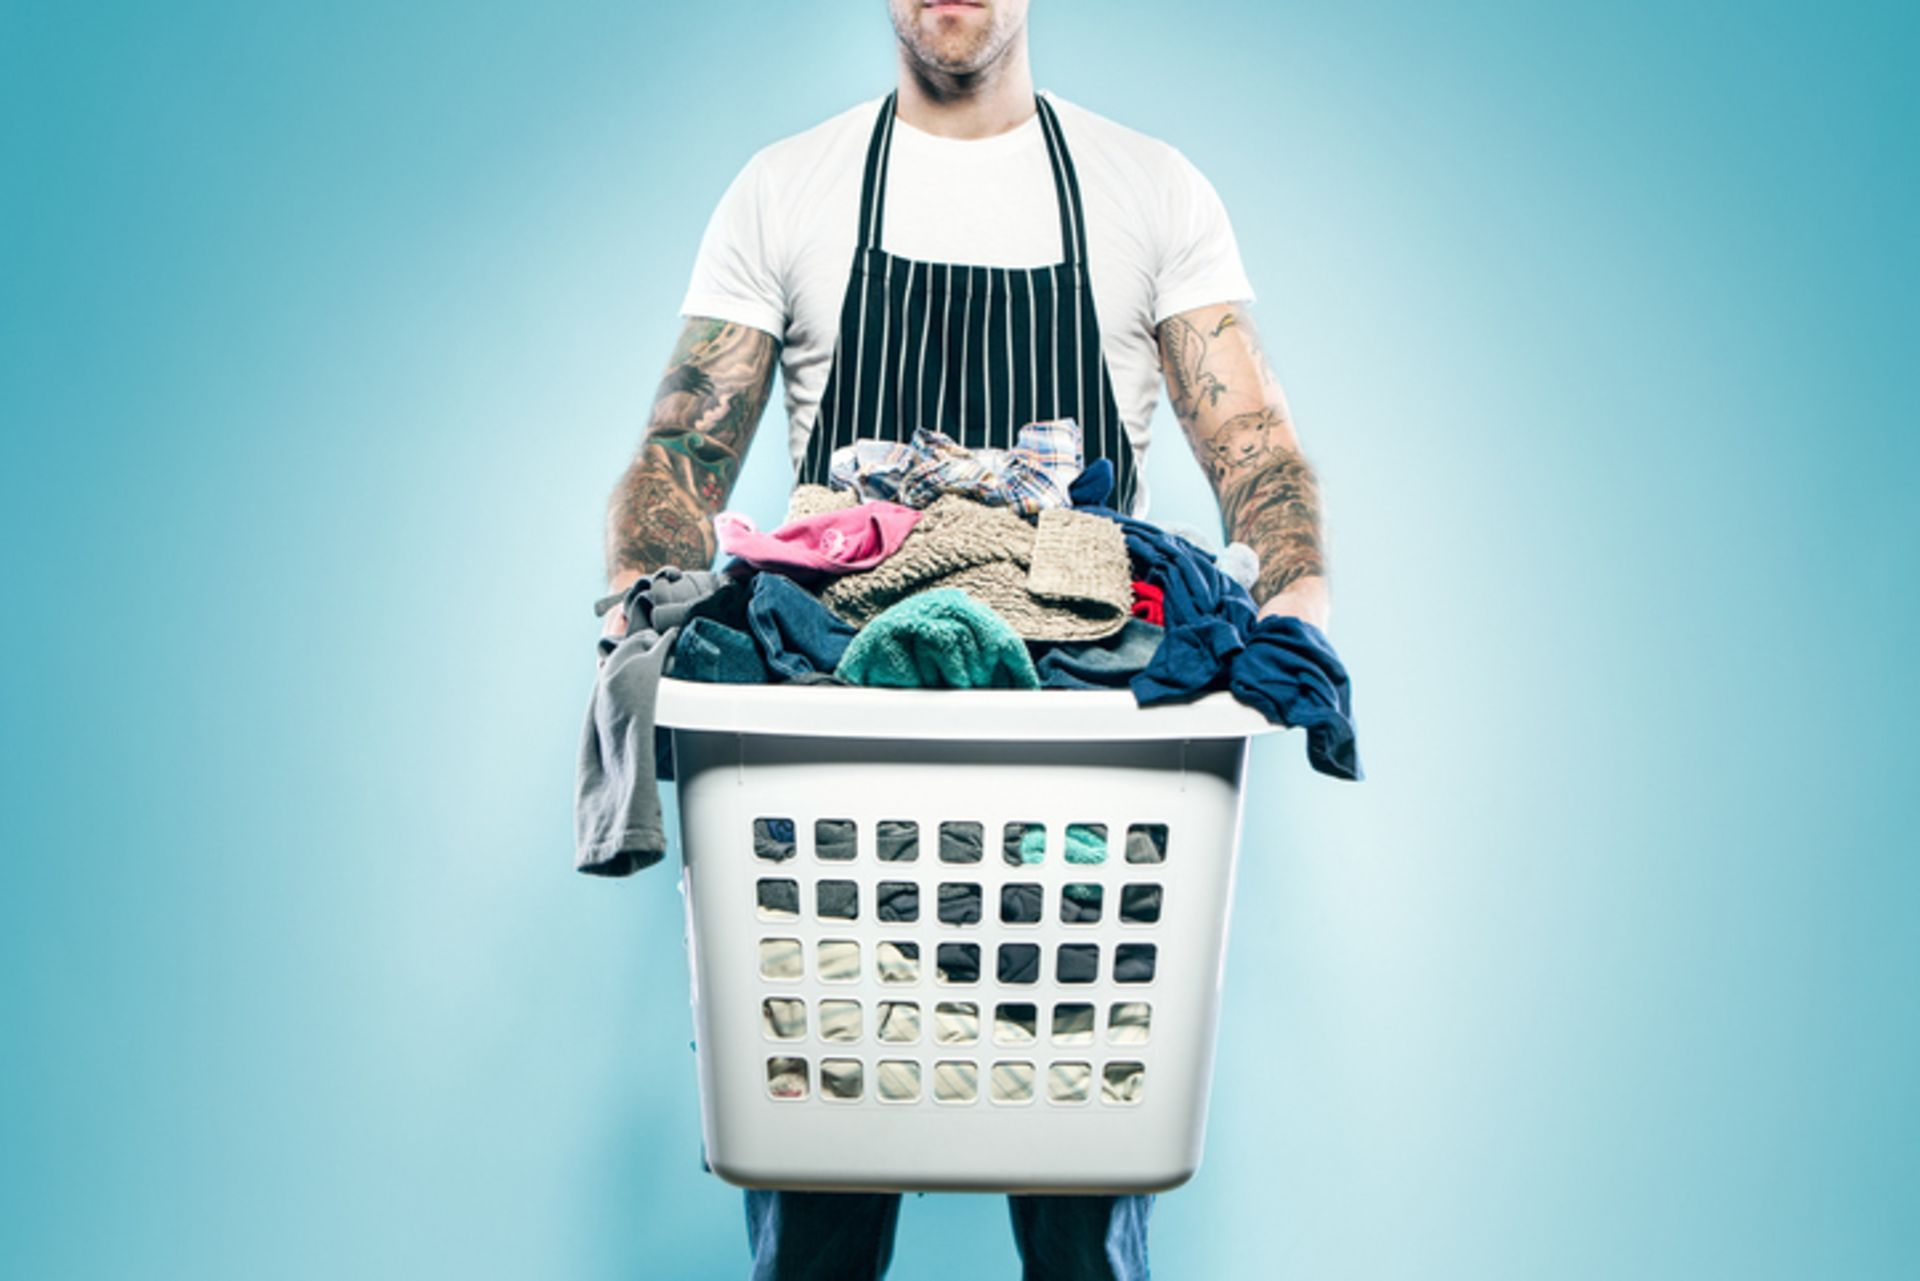 Can Pesky Household Chores Be Healthy?